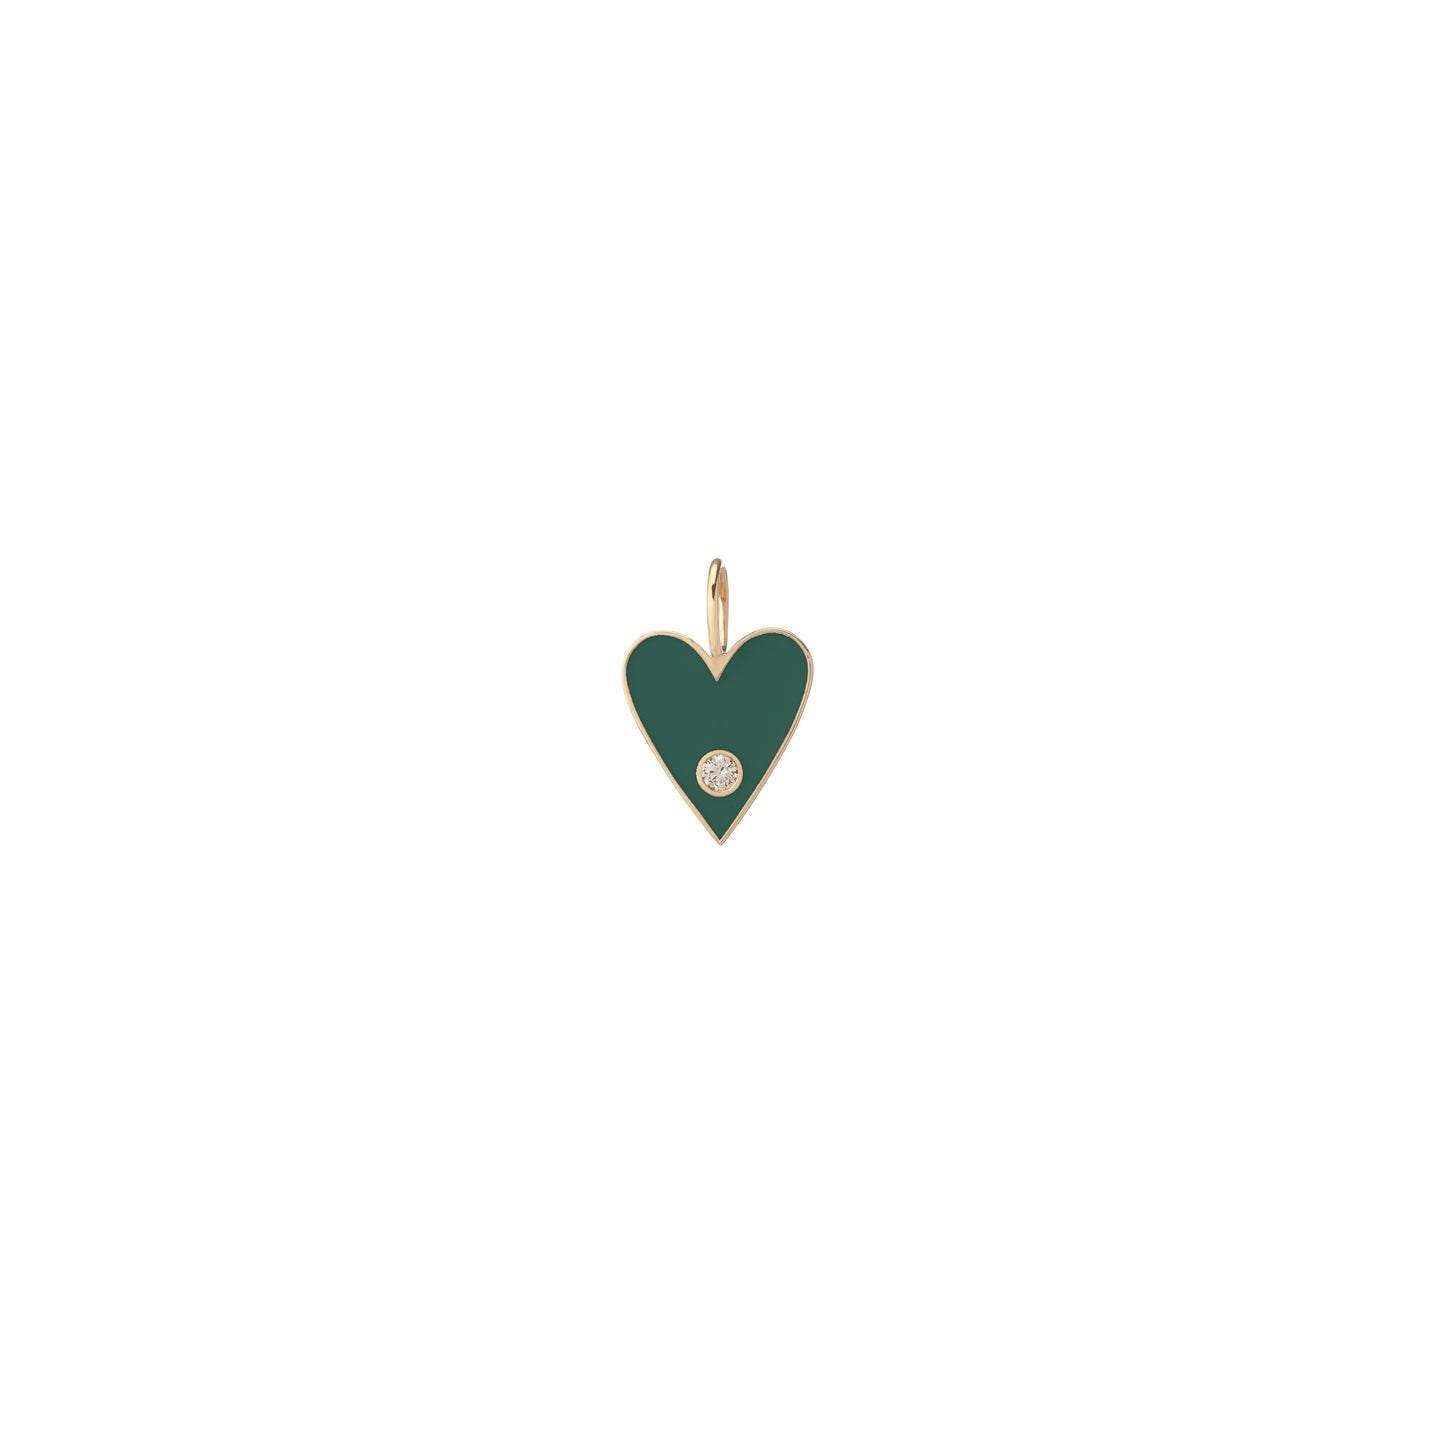 Medium Gold Border Enamel Heart with Diamond